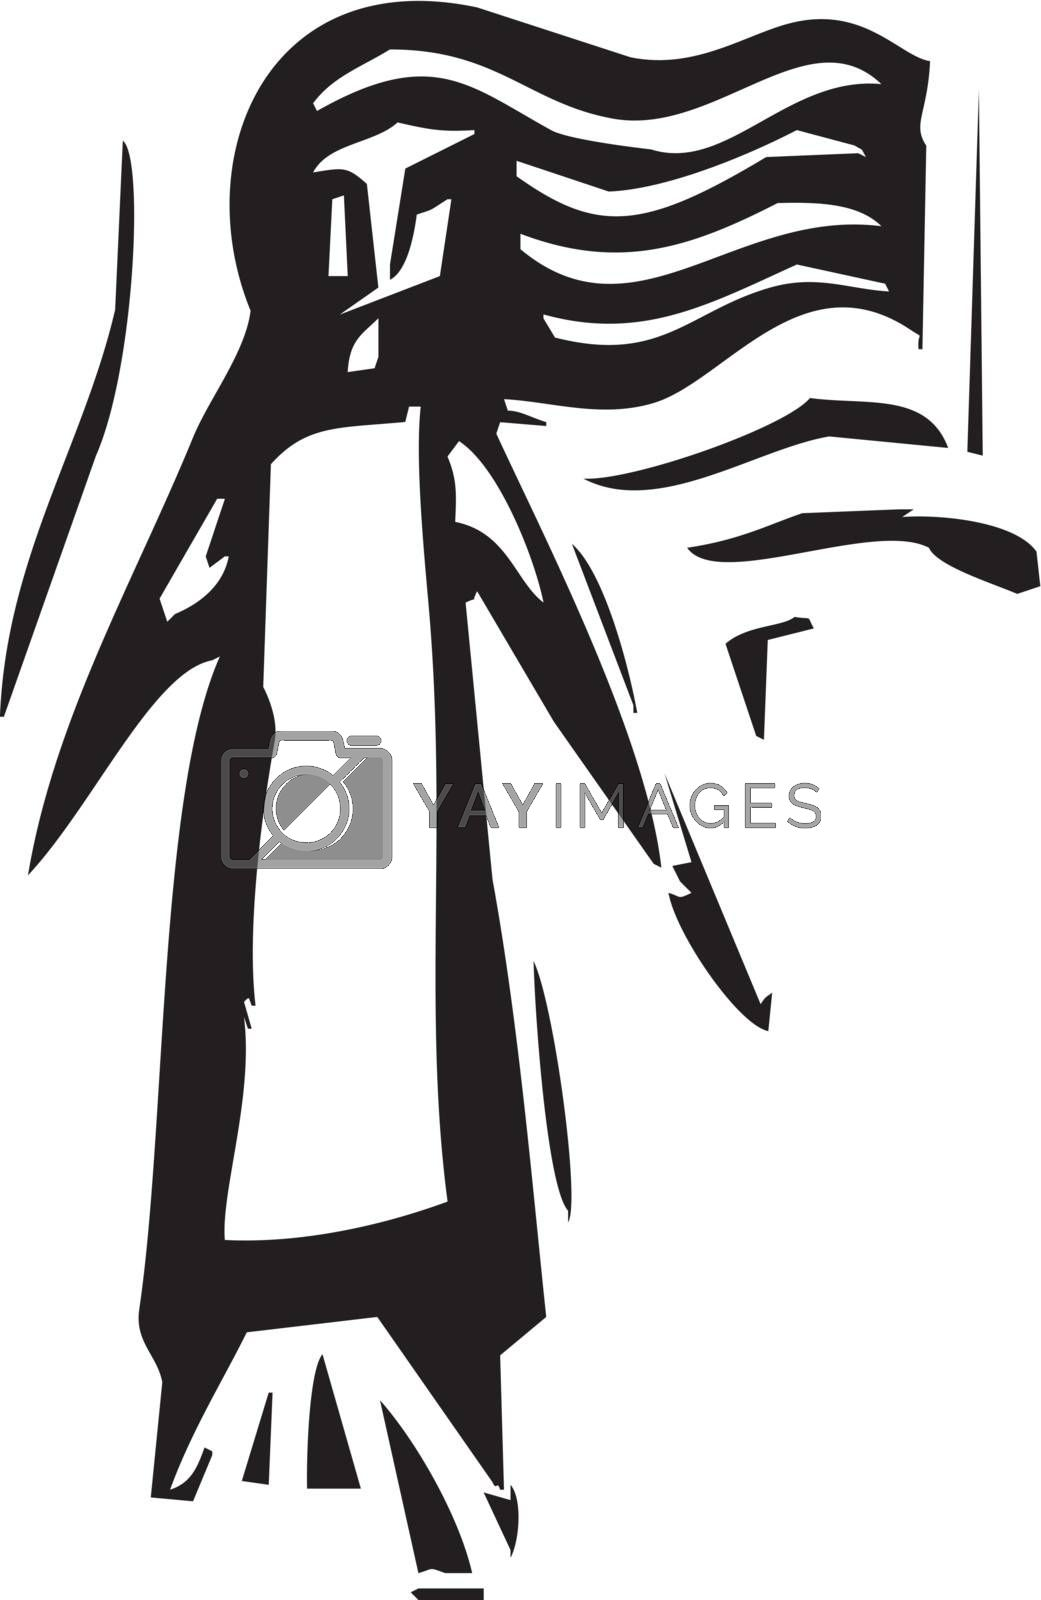 Woodcut expressionist style image of a girl with long hair.